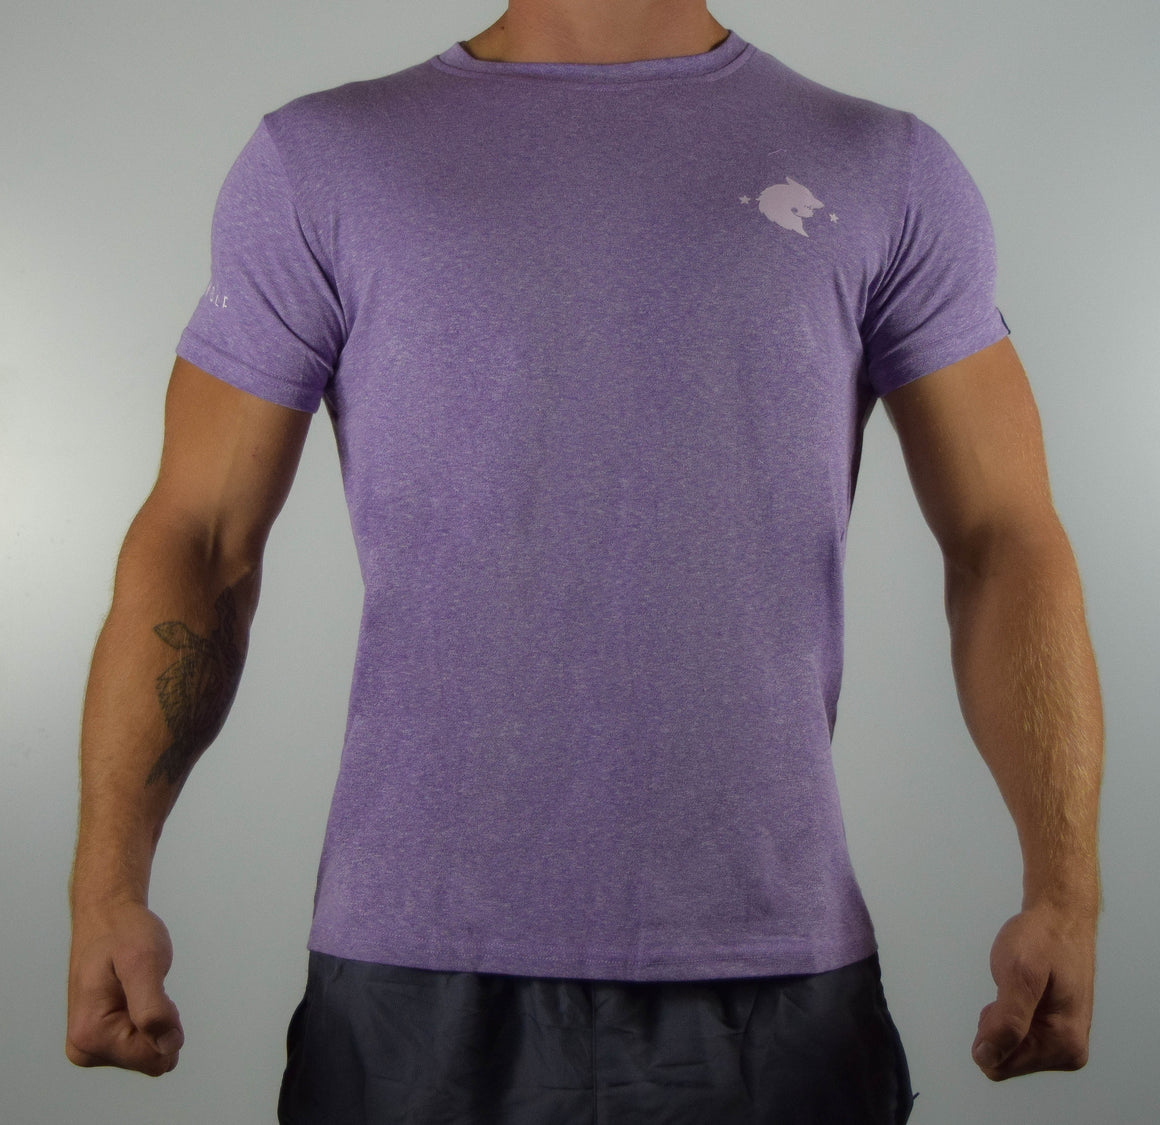 WearWolf Tri Series - Small Logo - Mauve - WearWolf Clothing UK